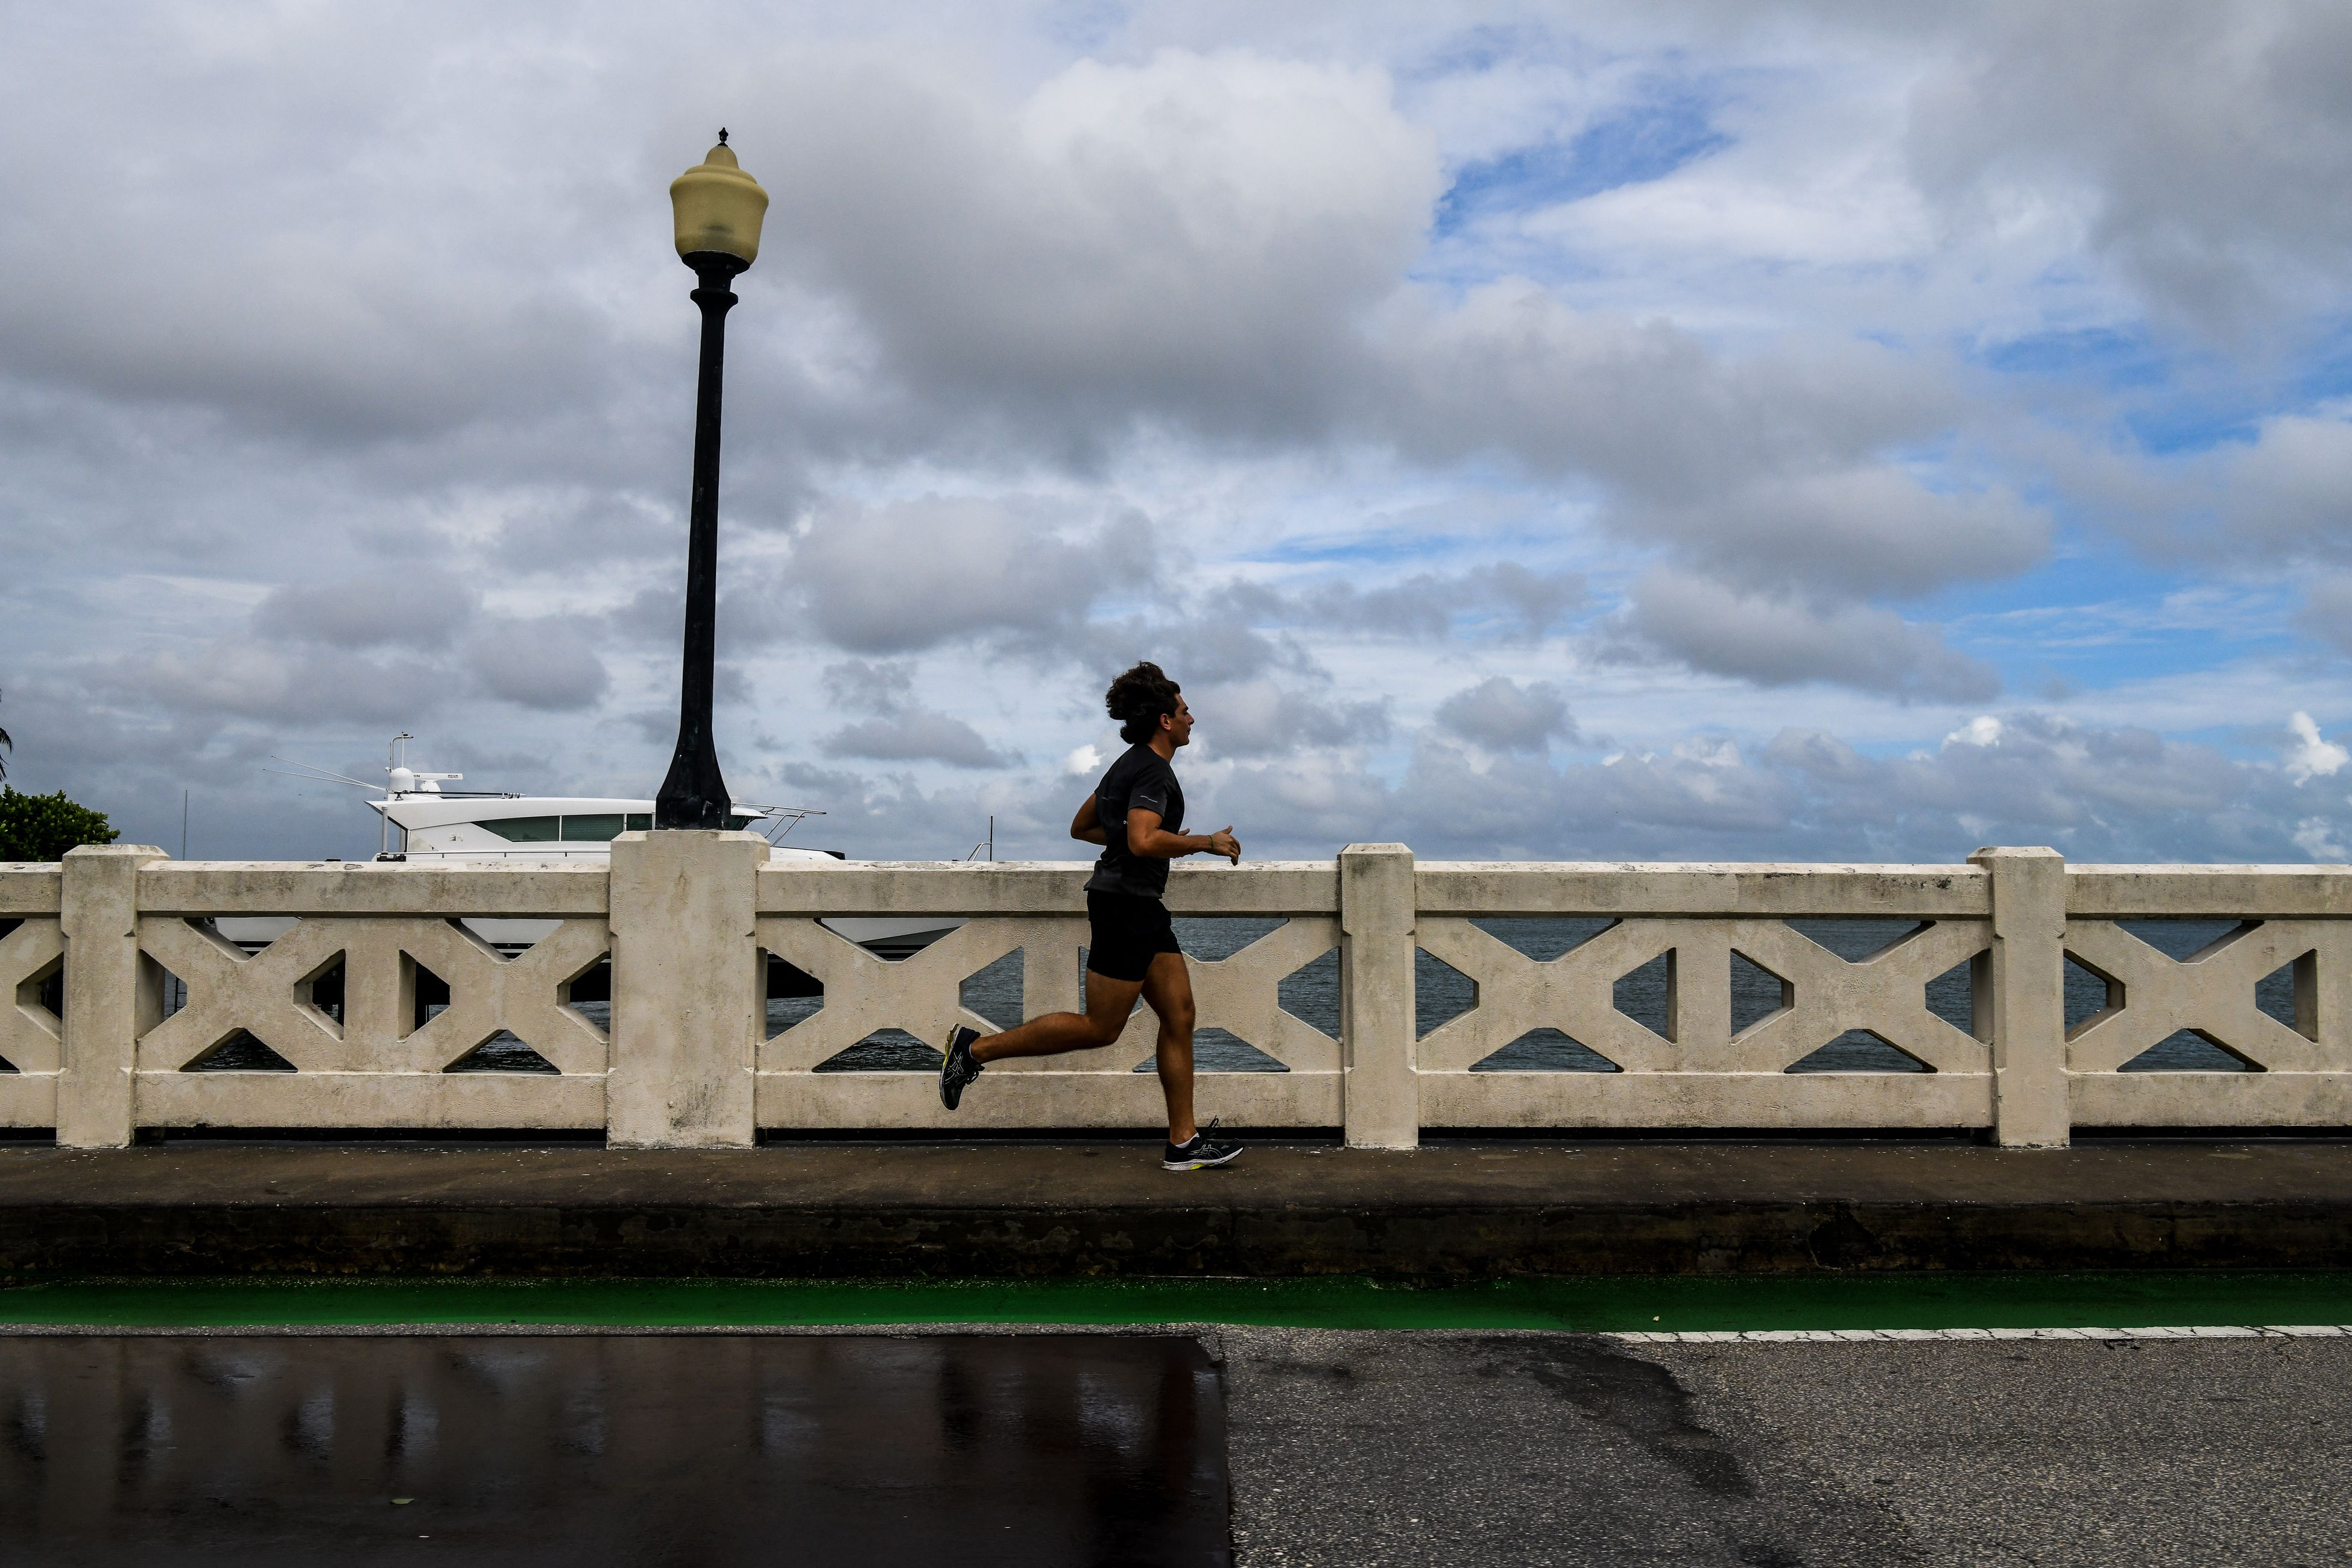 Hot, Humid Temperatures Ahead in South Florida Following Sunday's Blast of Rain